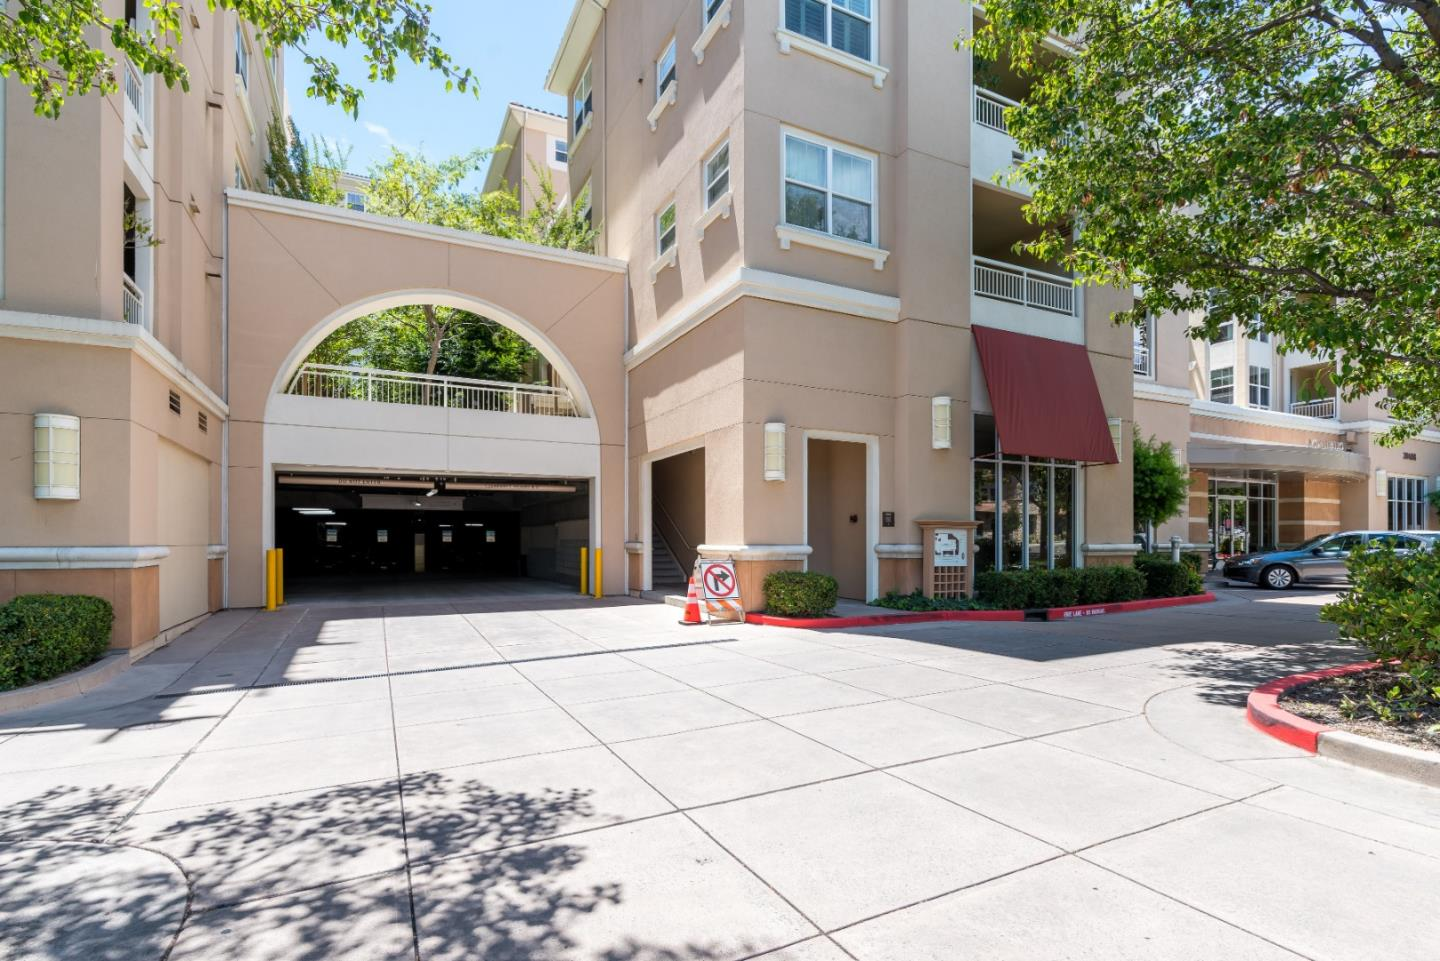 Here is your chance to own a home in the beautiful town center of Cupertino just a short distance to Highways 85 and 280. Located a short distance from shopping centers with grocery stores, coffee shops, and restaurants. This condominium has sublime natural light and rare views from the sixth floor with a lovely balcony for fresh air as well. The unit comes with two assigned parking spots, an in-unit washer / dryer, two hallway closets, and a breakfast bar. The whole facility has excellent amenities such as community rooms, fitness center, swimming pool & hot tub. Also located in the zones of excellent Cupertino schools.